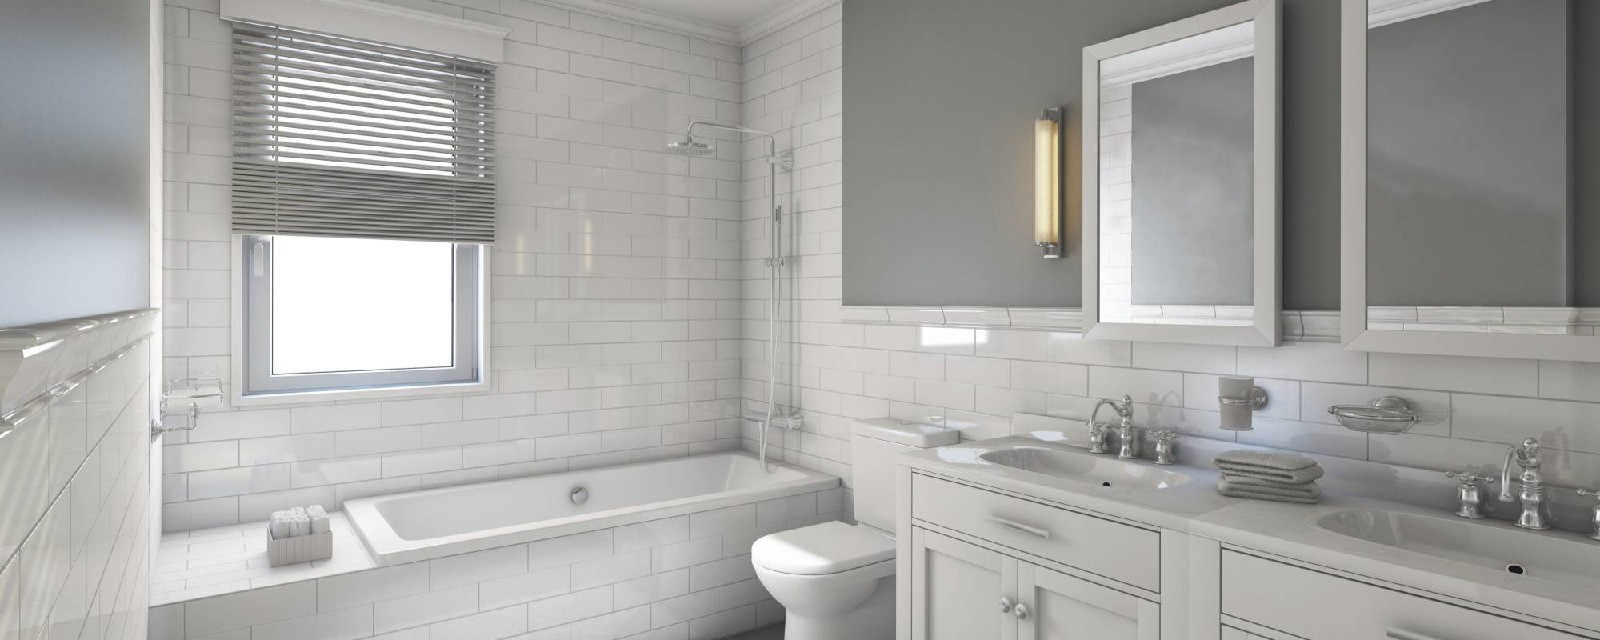 Bathrooms, Fixtures, Showers & Stalls